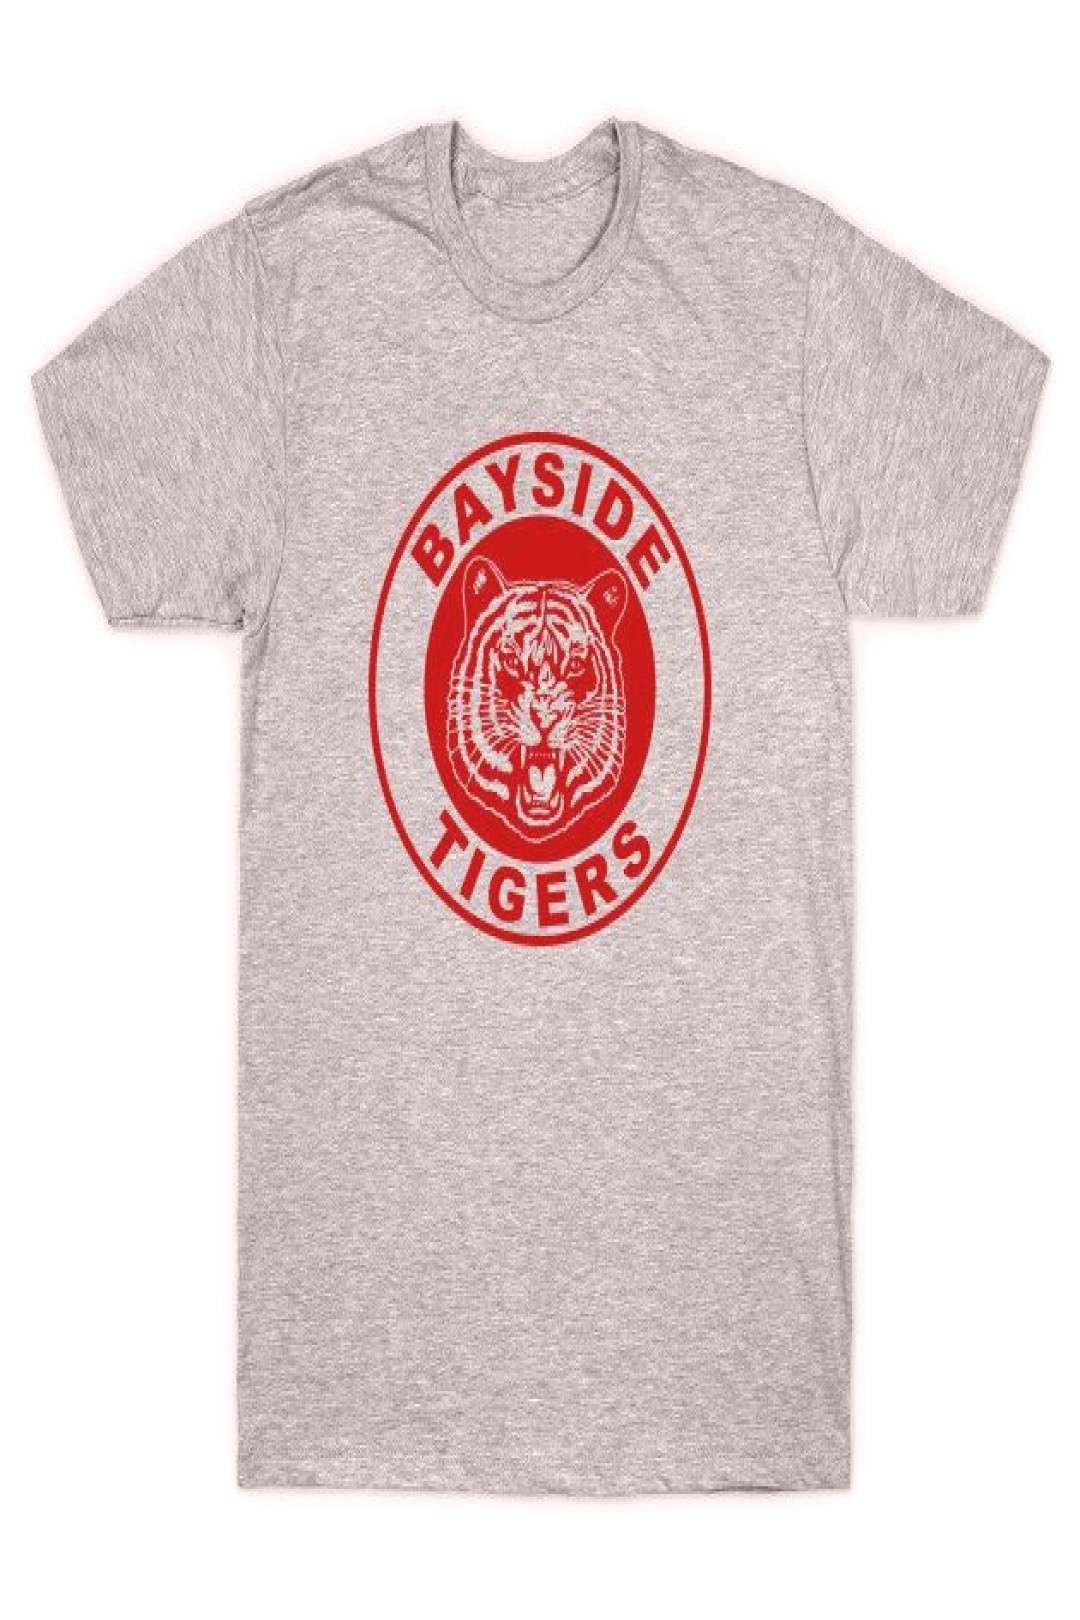 Bayside Tigers - Saved by the Bell Shirts Bayside Tigers. Bayside High School sports team logo, as